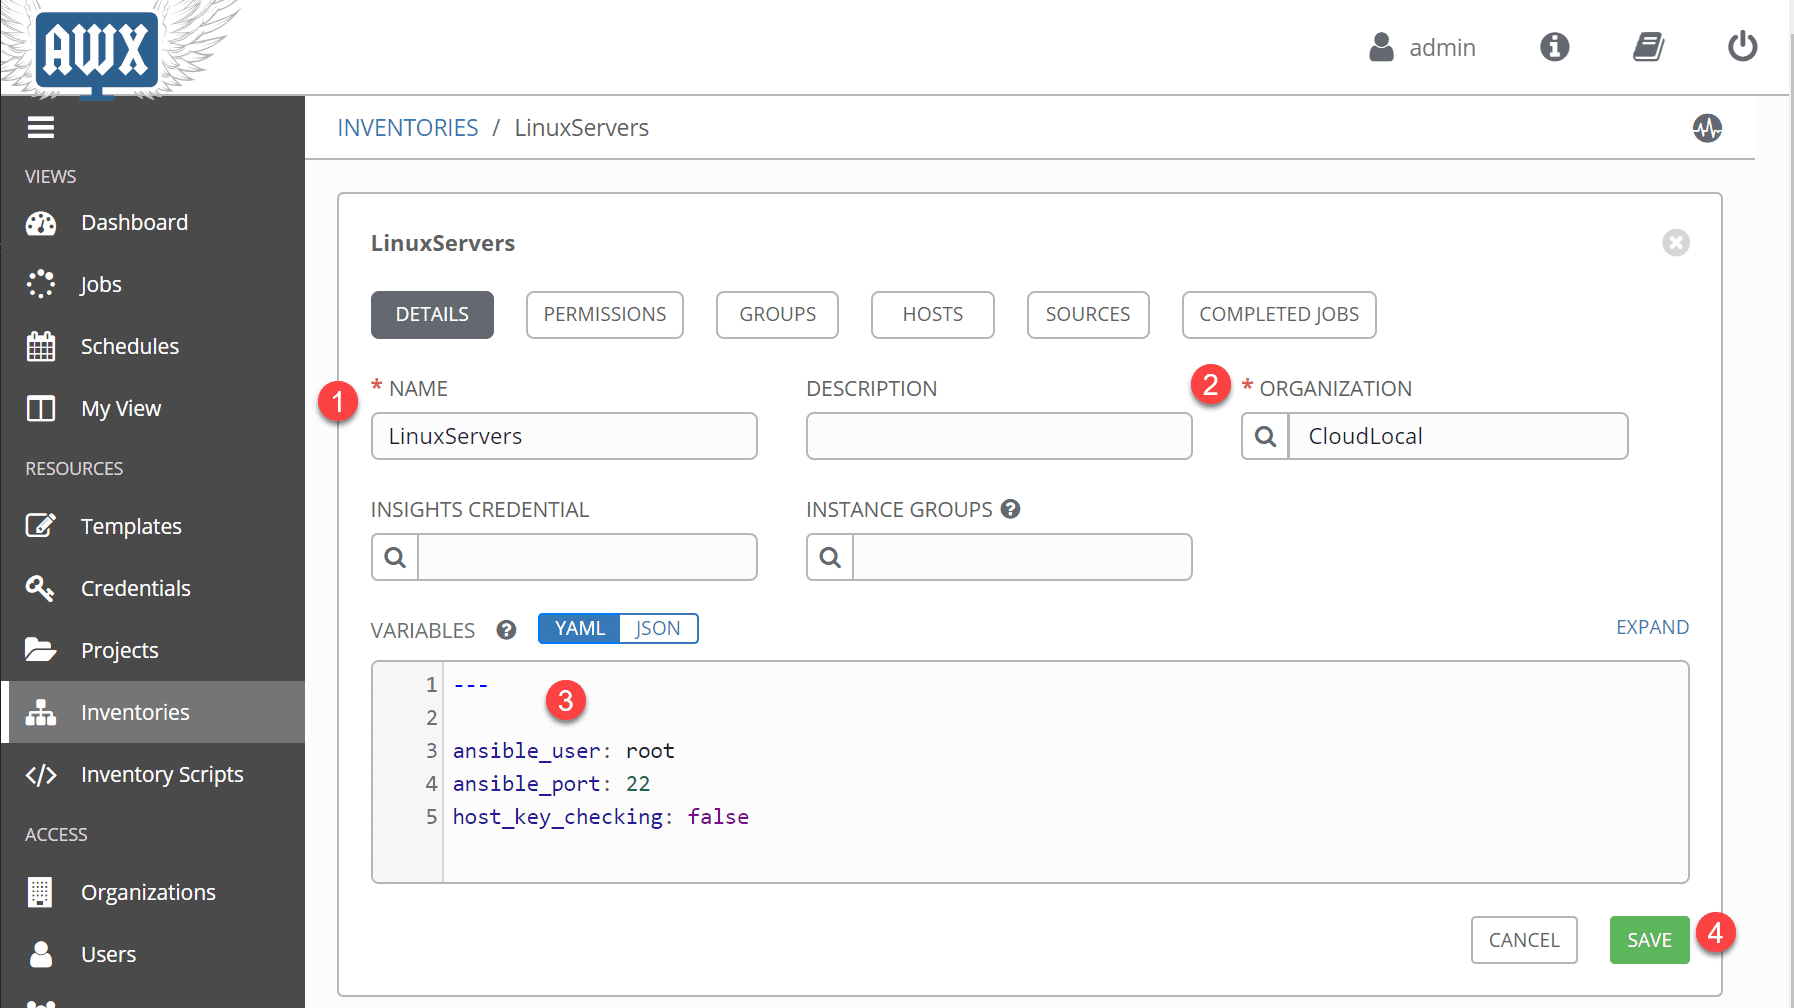 Creating-inventories-in-Ansible-AWX-for-server-connections-and-hosts Use Ansible AWX to Automate Linux Updates and Patches